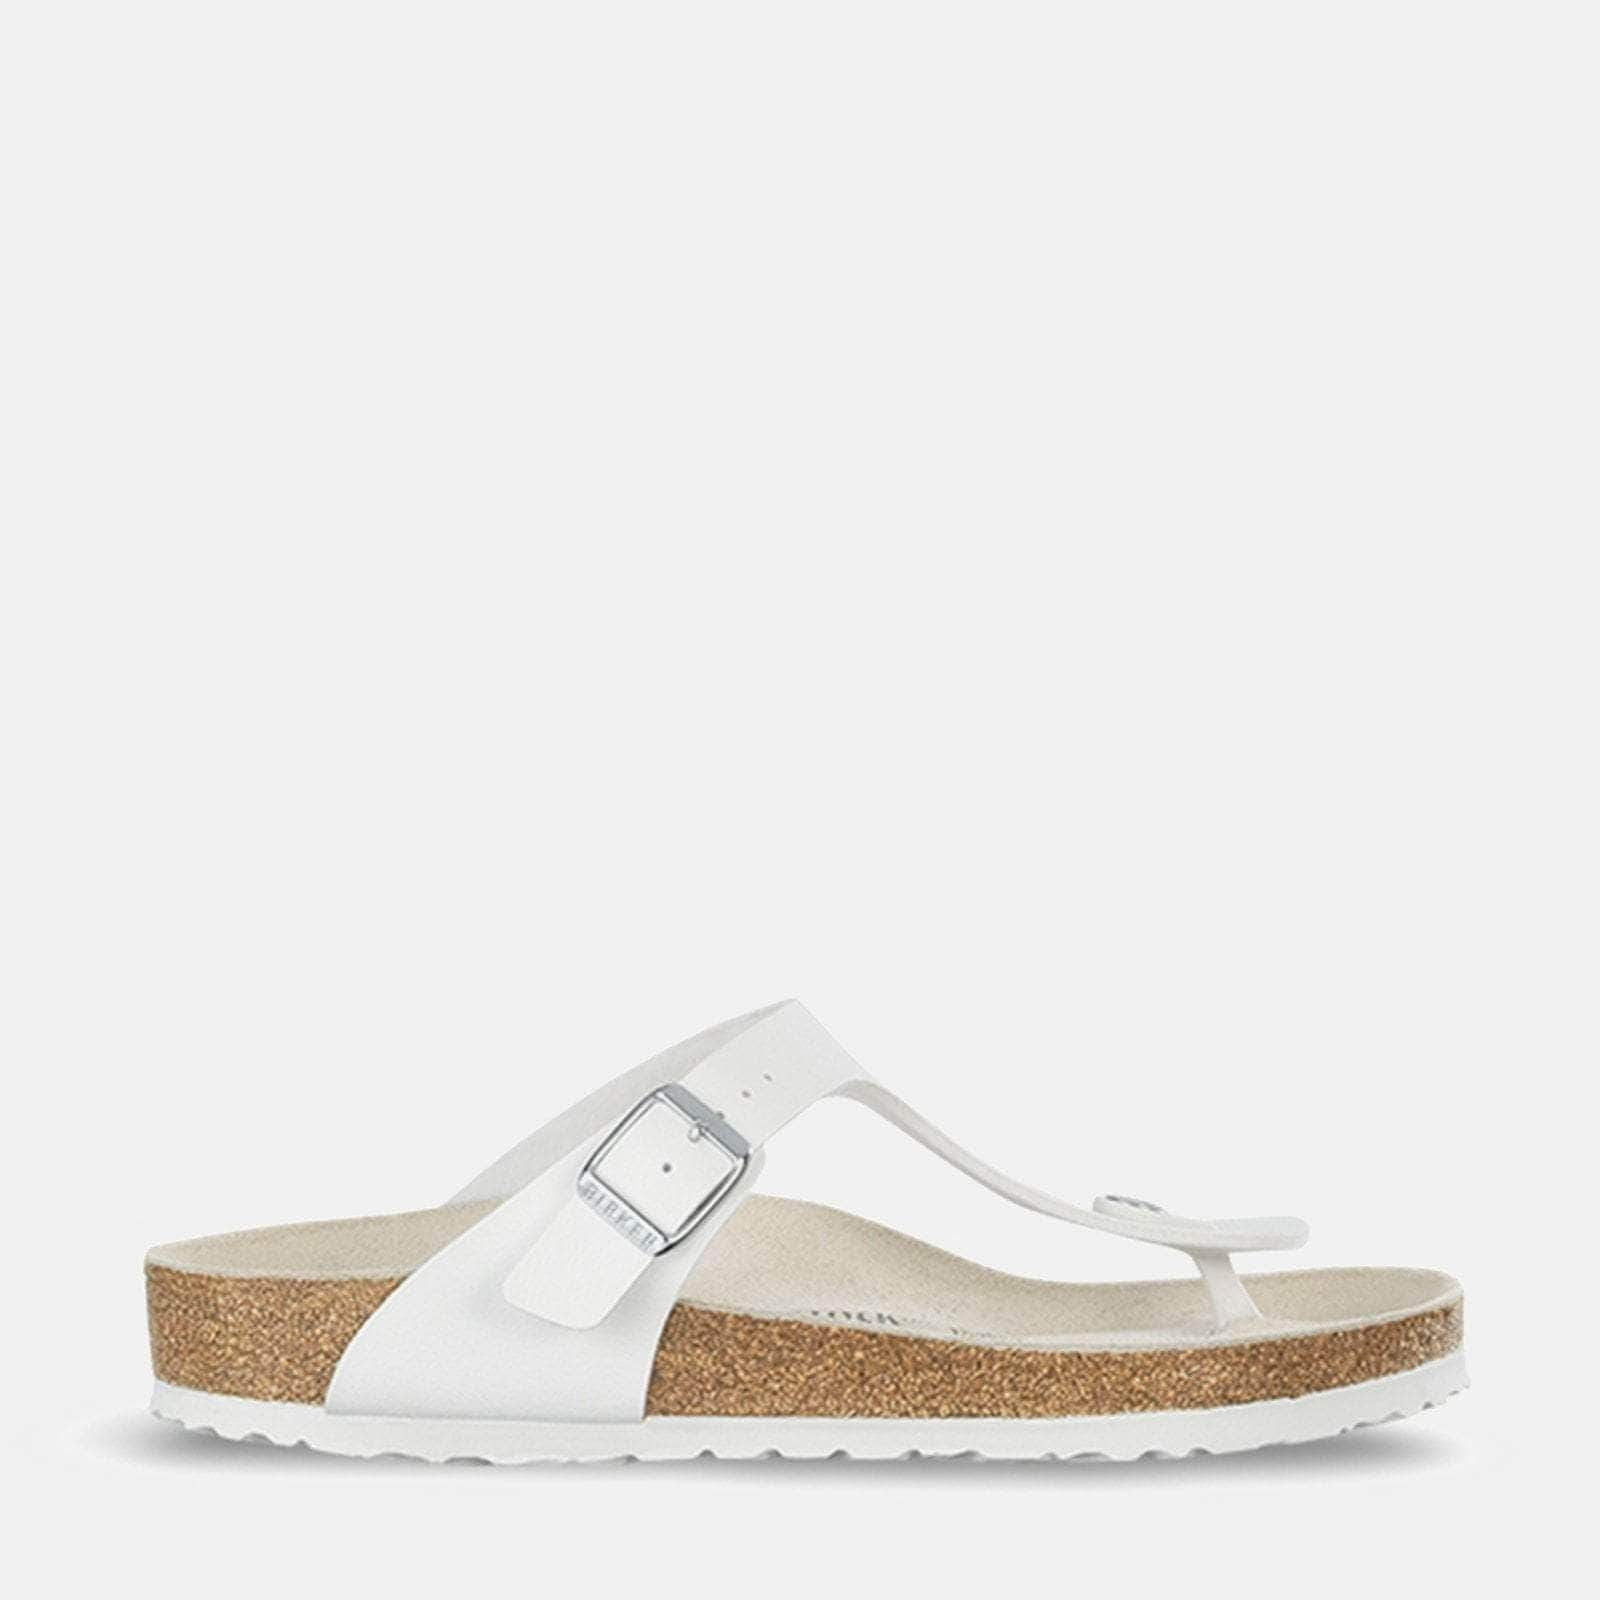 Birkenstock Footwear Gizeh Regular Fit White 043731